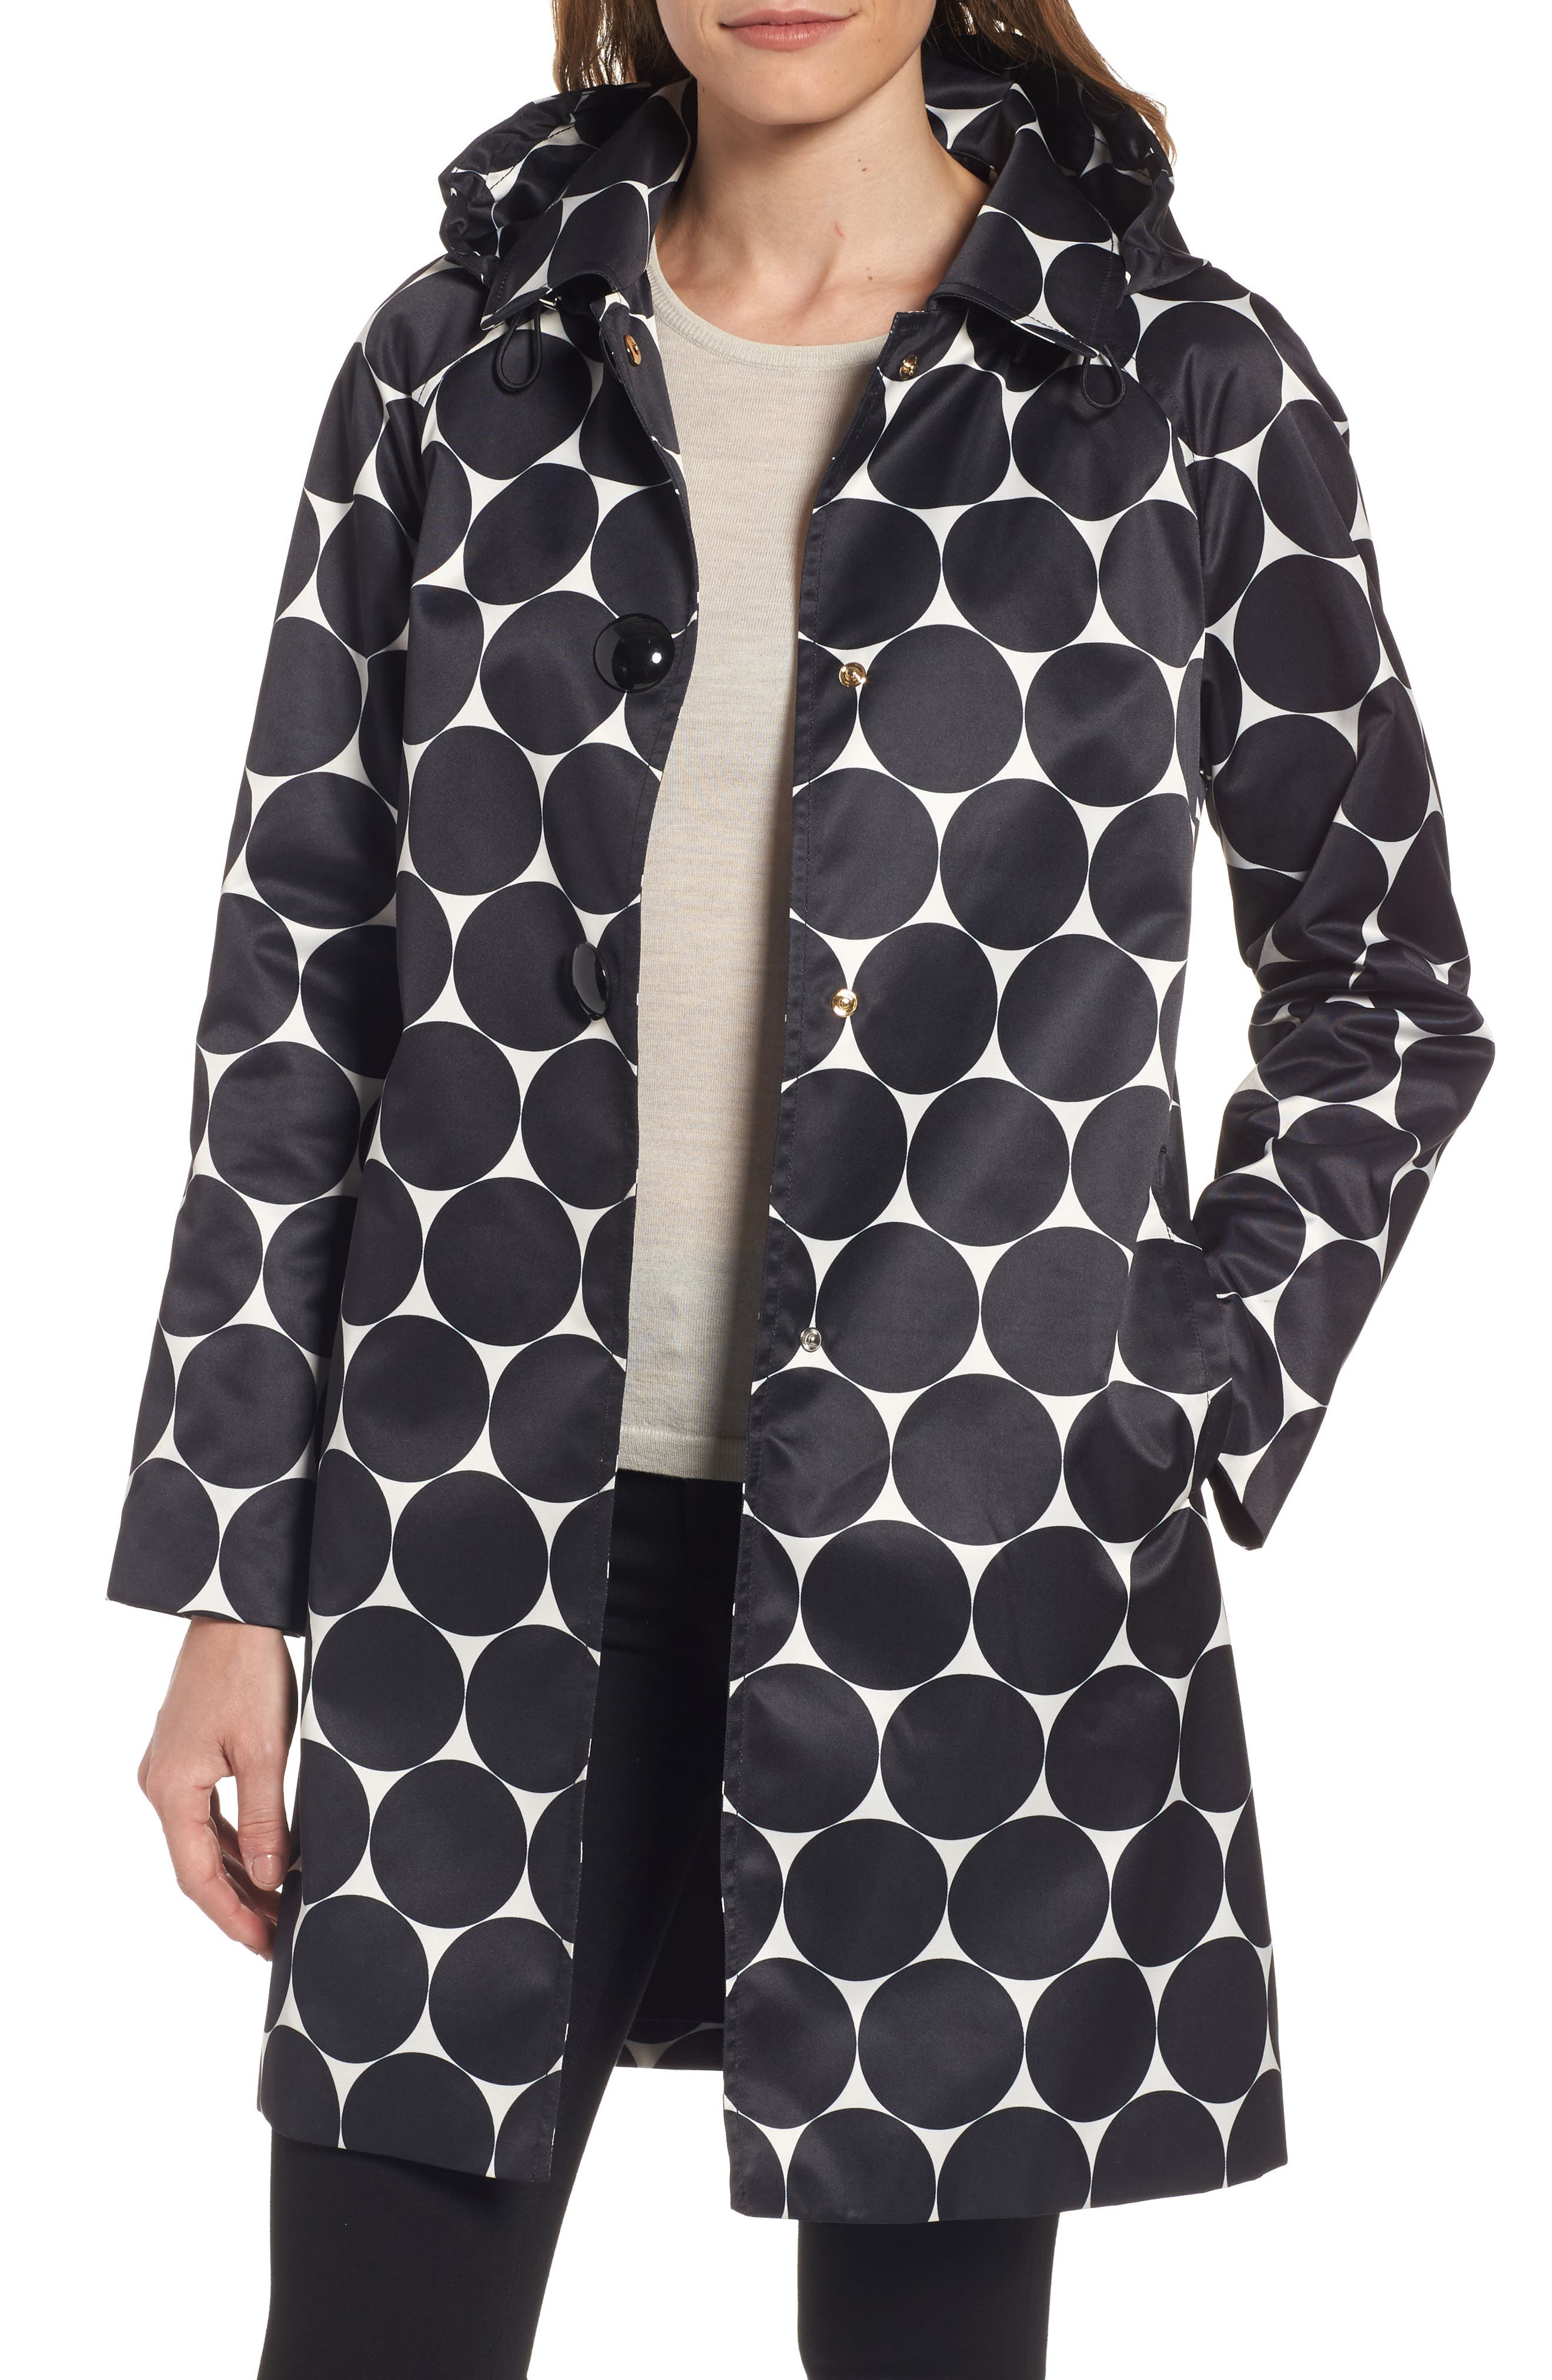 dot print raincoat,                             Main thumbnail 1, color,                             Dl Dot Cream/ Black